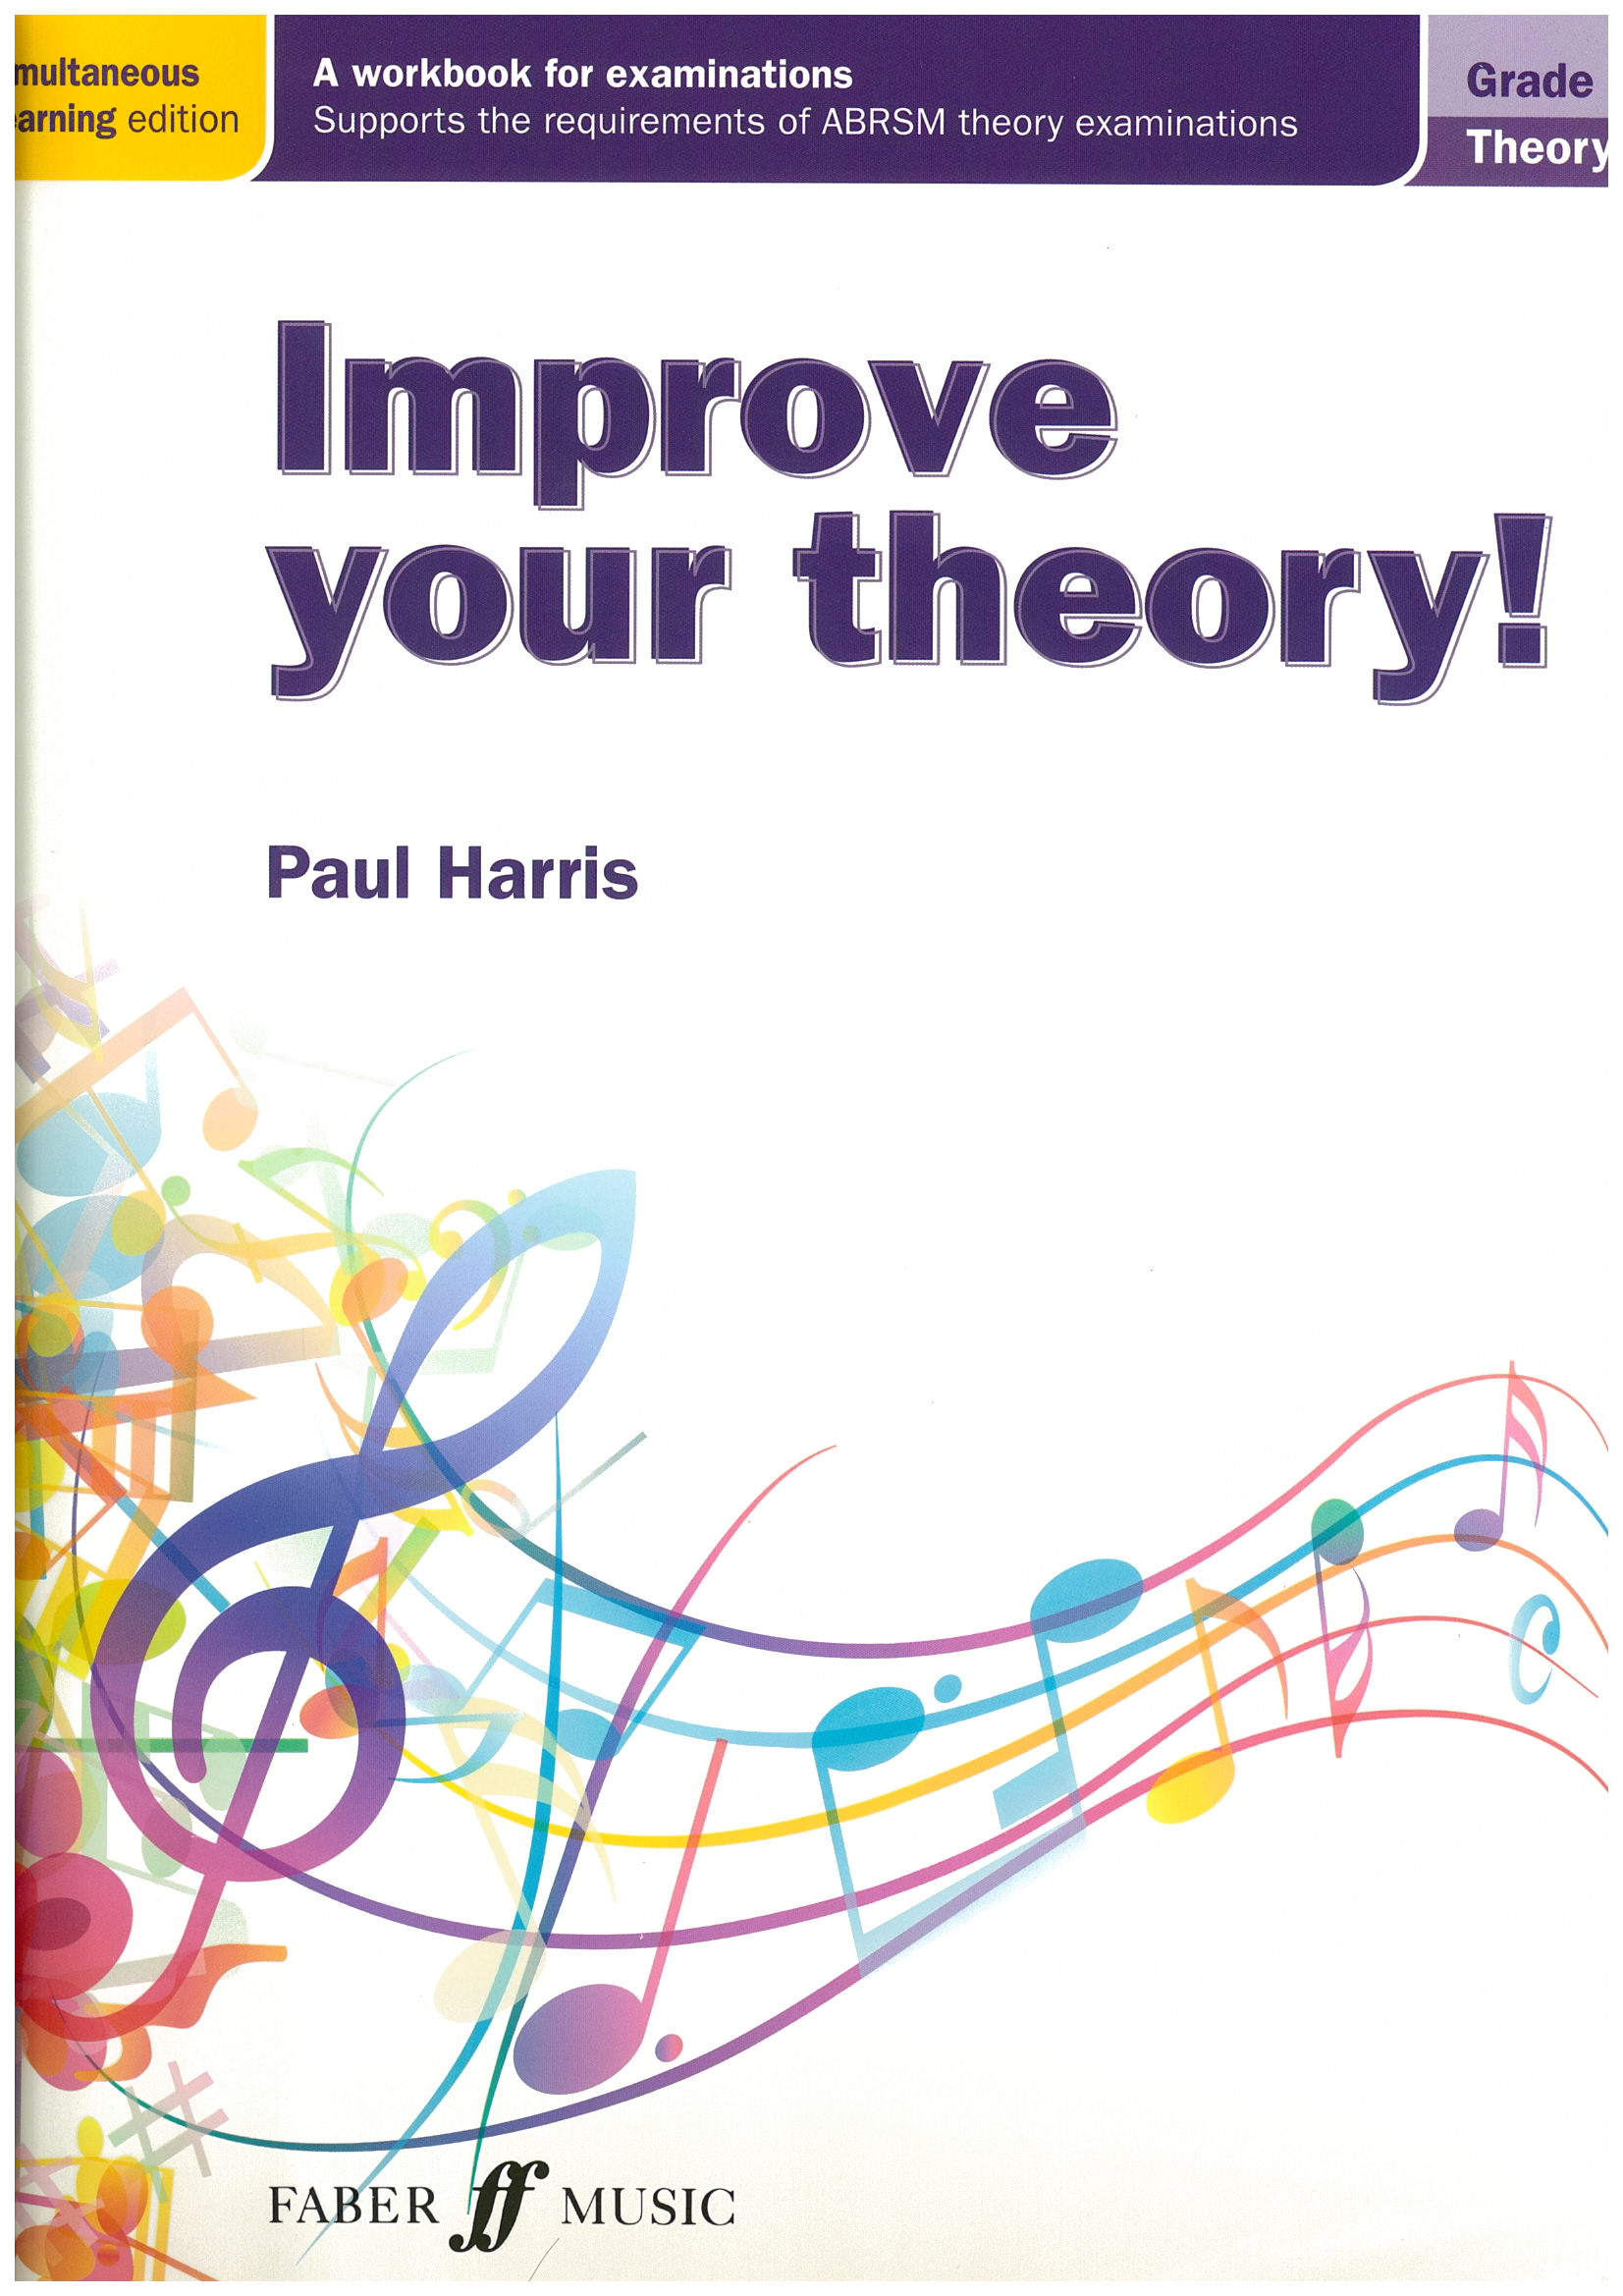 Improve your theory! G4